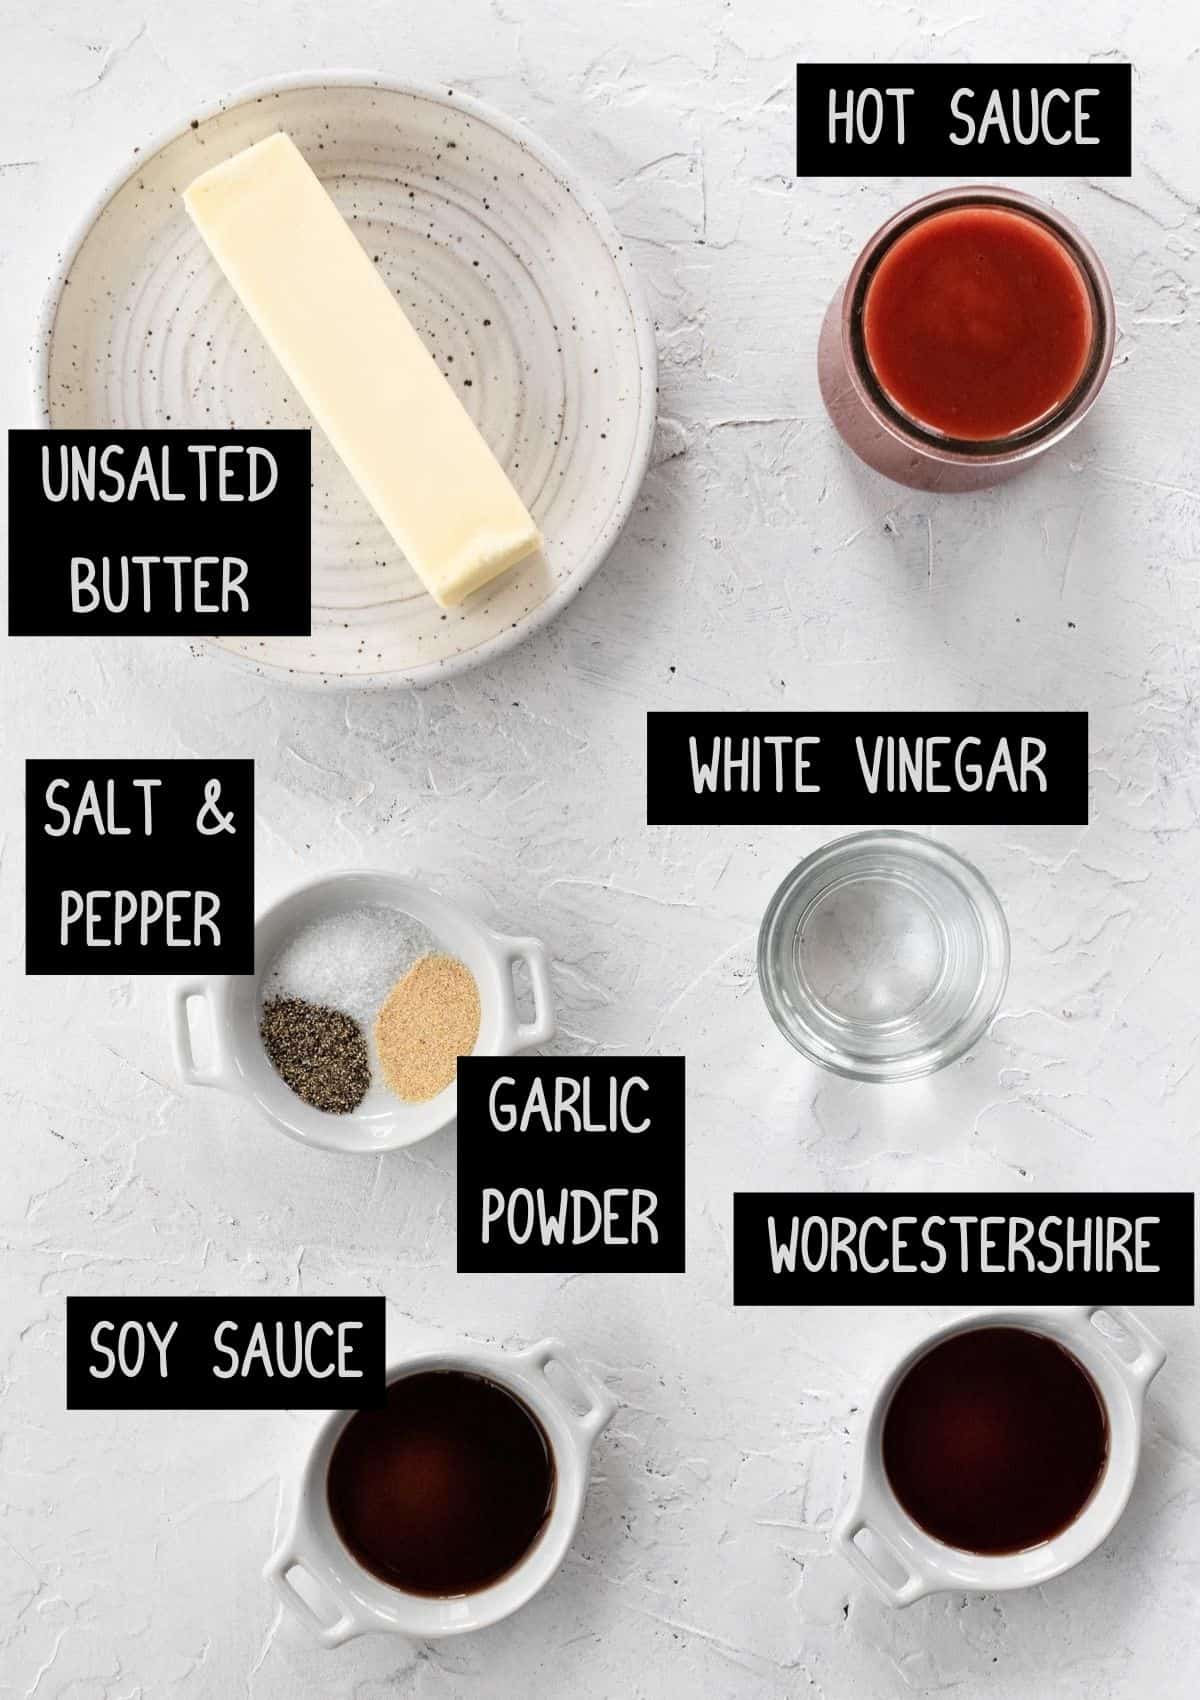 Labelled ingredients for homemade buffalo sauce (see recipe for details).